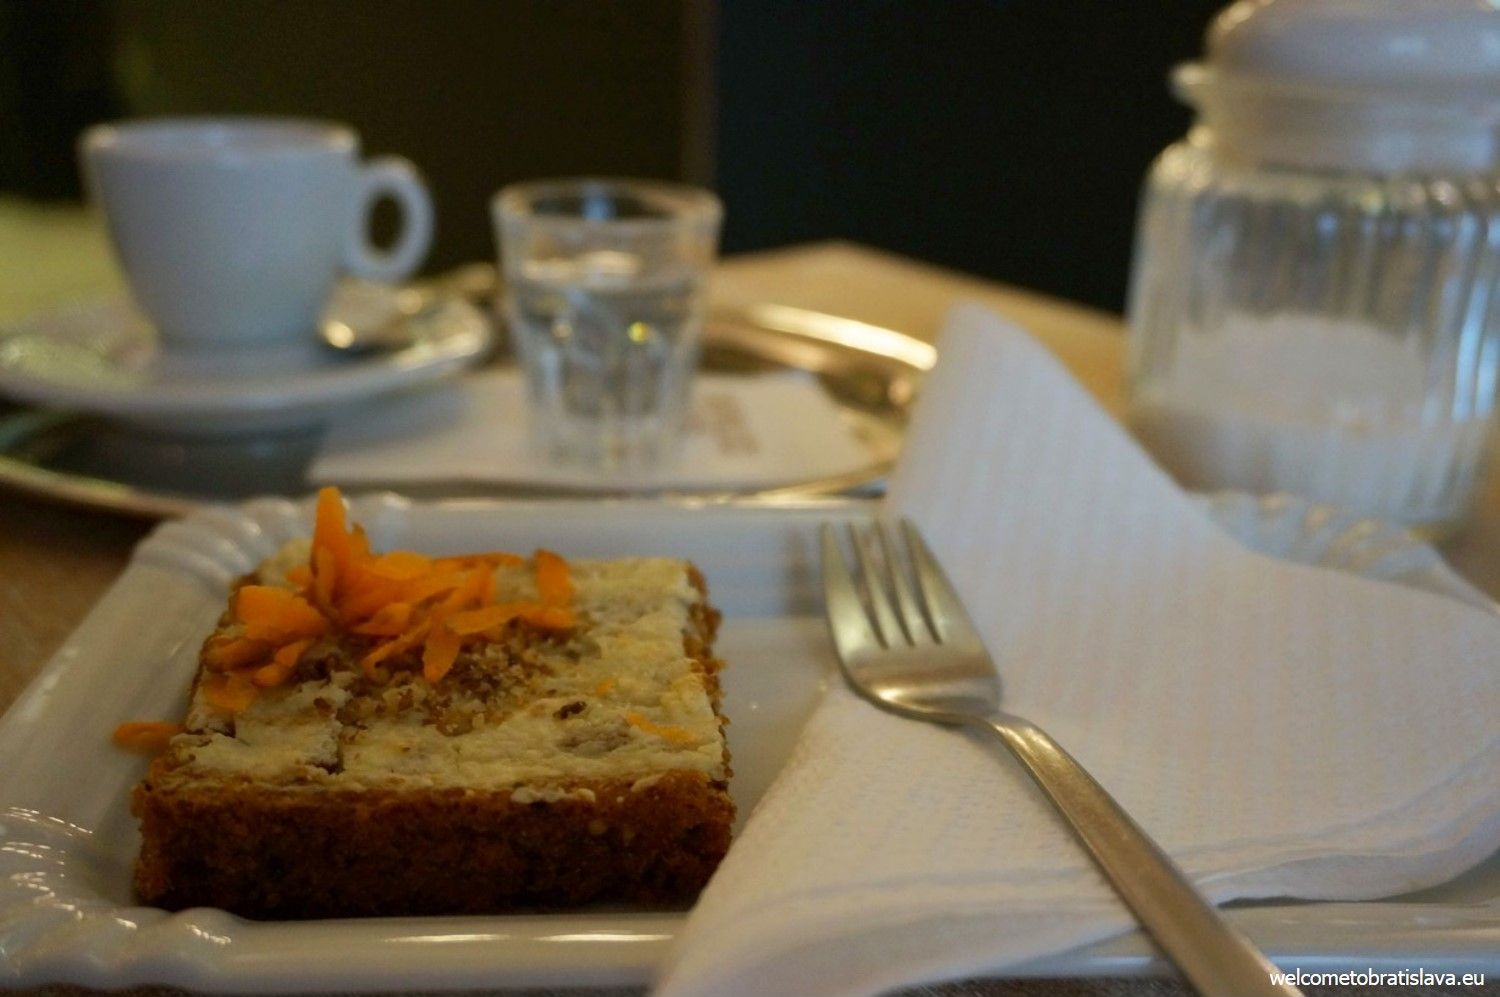 The healthy carrot cake